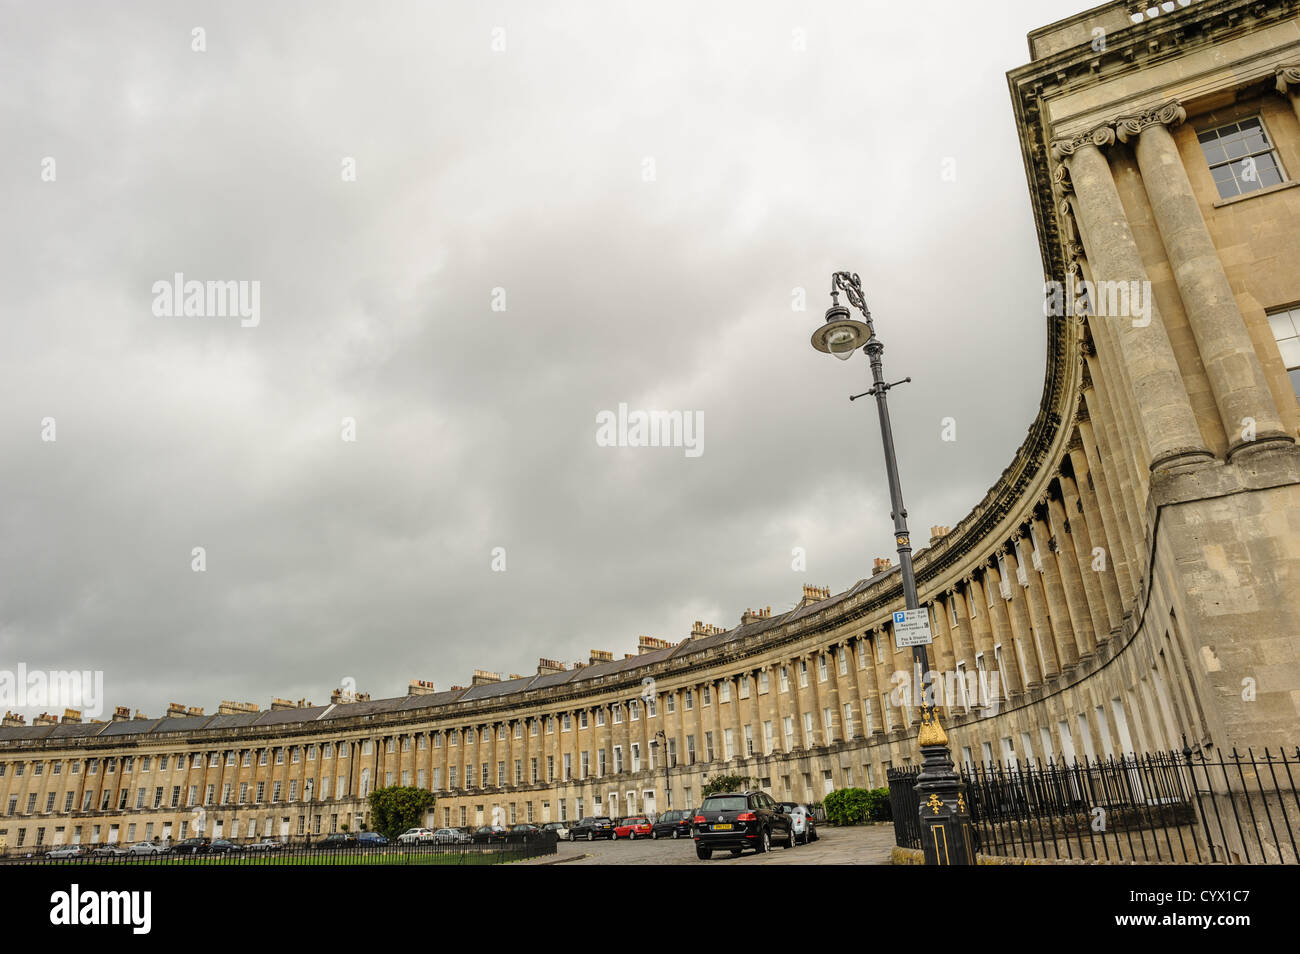 BATH, UK - The houses of Royal Cresent. The Royal Crescent is a street of 30 terraced houses laid out in a sweeping - Stock Image